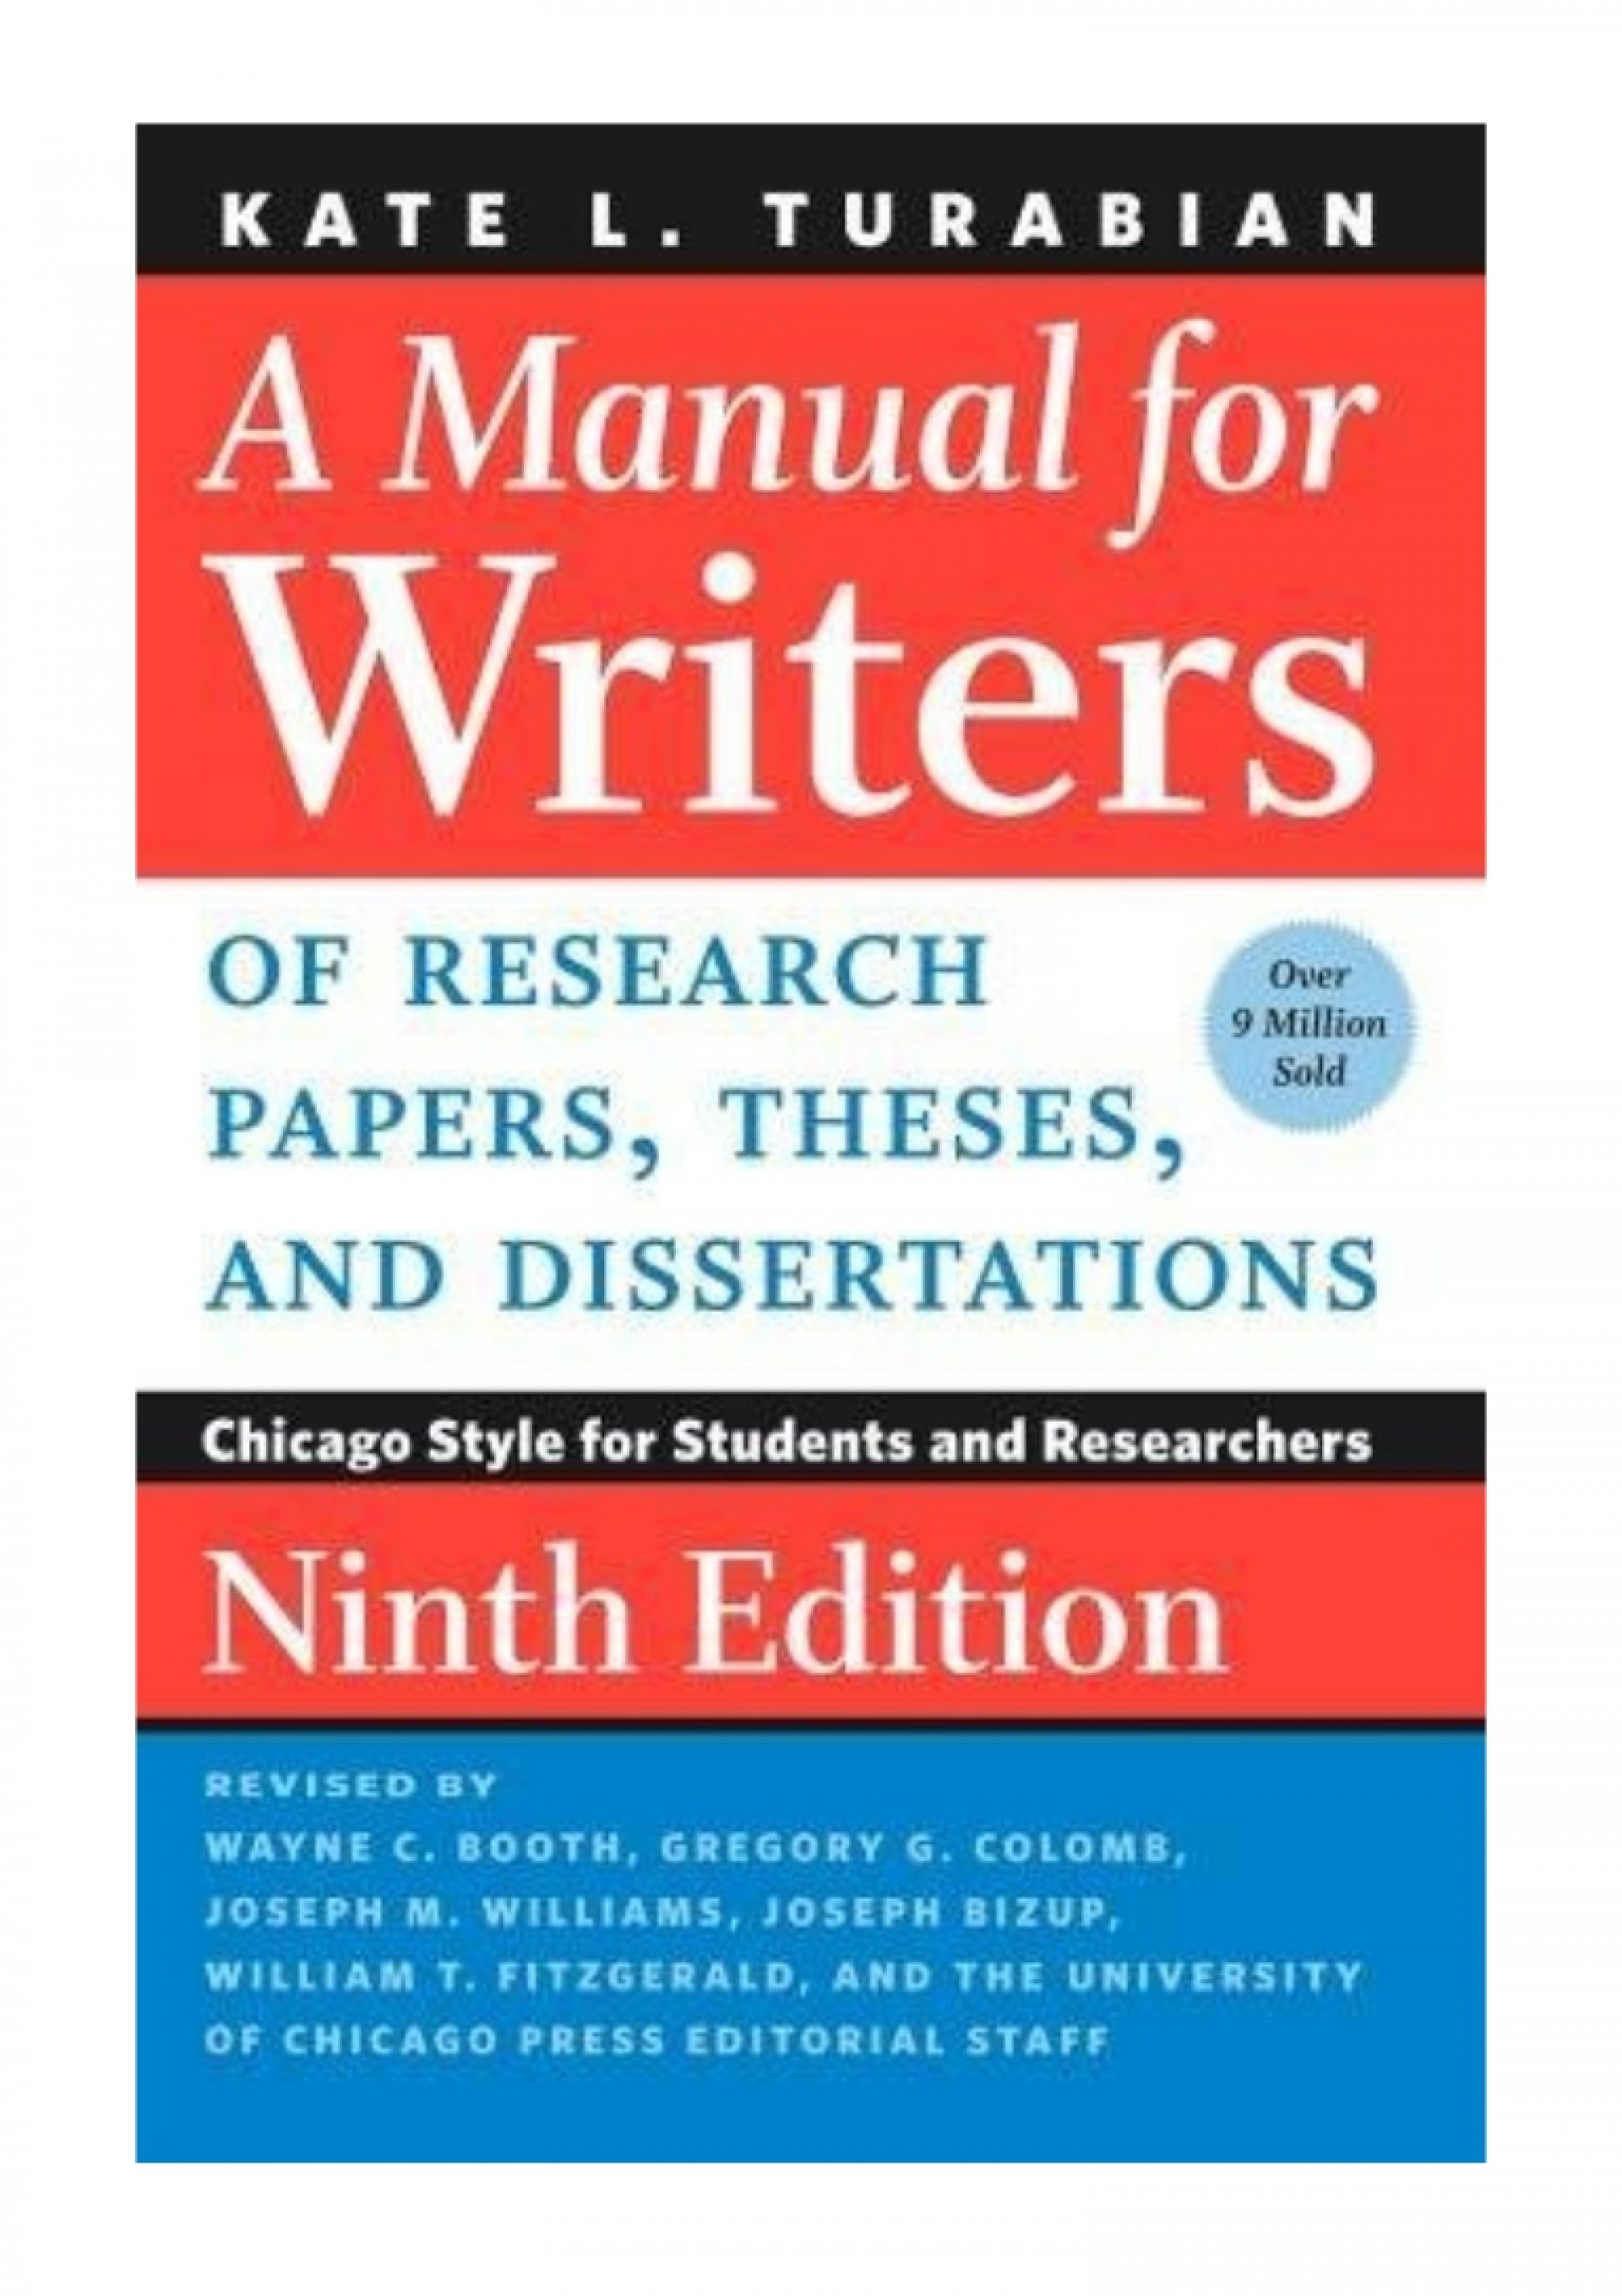 007 022643057x Amanualforwritersofresearchpapersthesesanddissertationsnintheditionbykatel Thumbnail Research Paper Manual For Writers Of Papers Theses And Sensational A Dissertations Ed. 8 Turabian Ninth Edition 1920